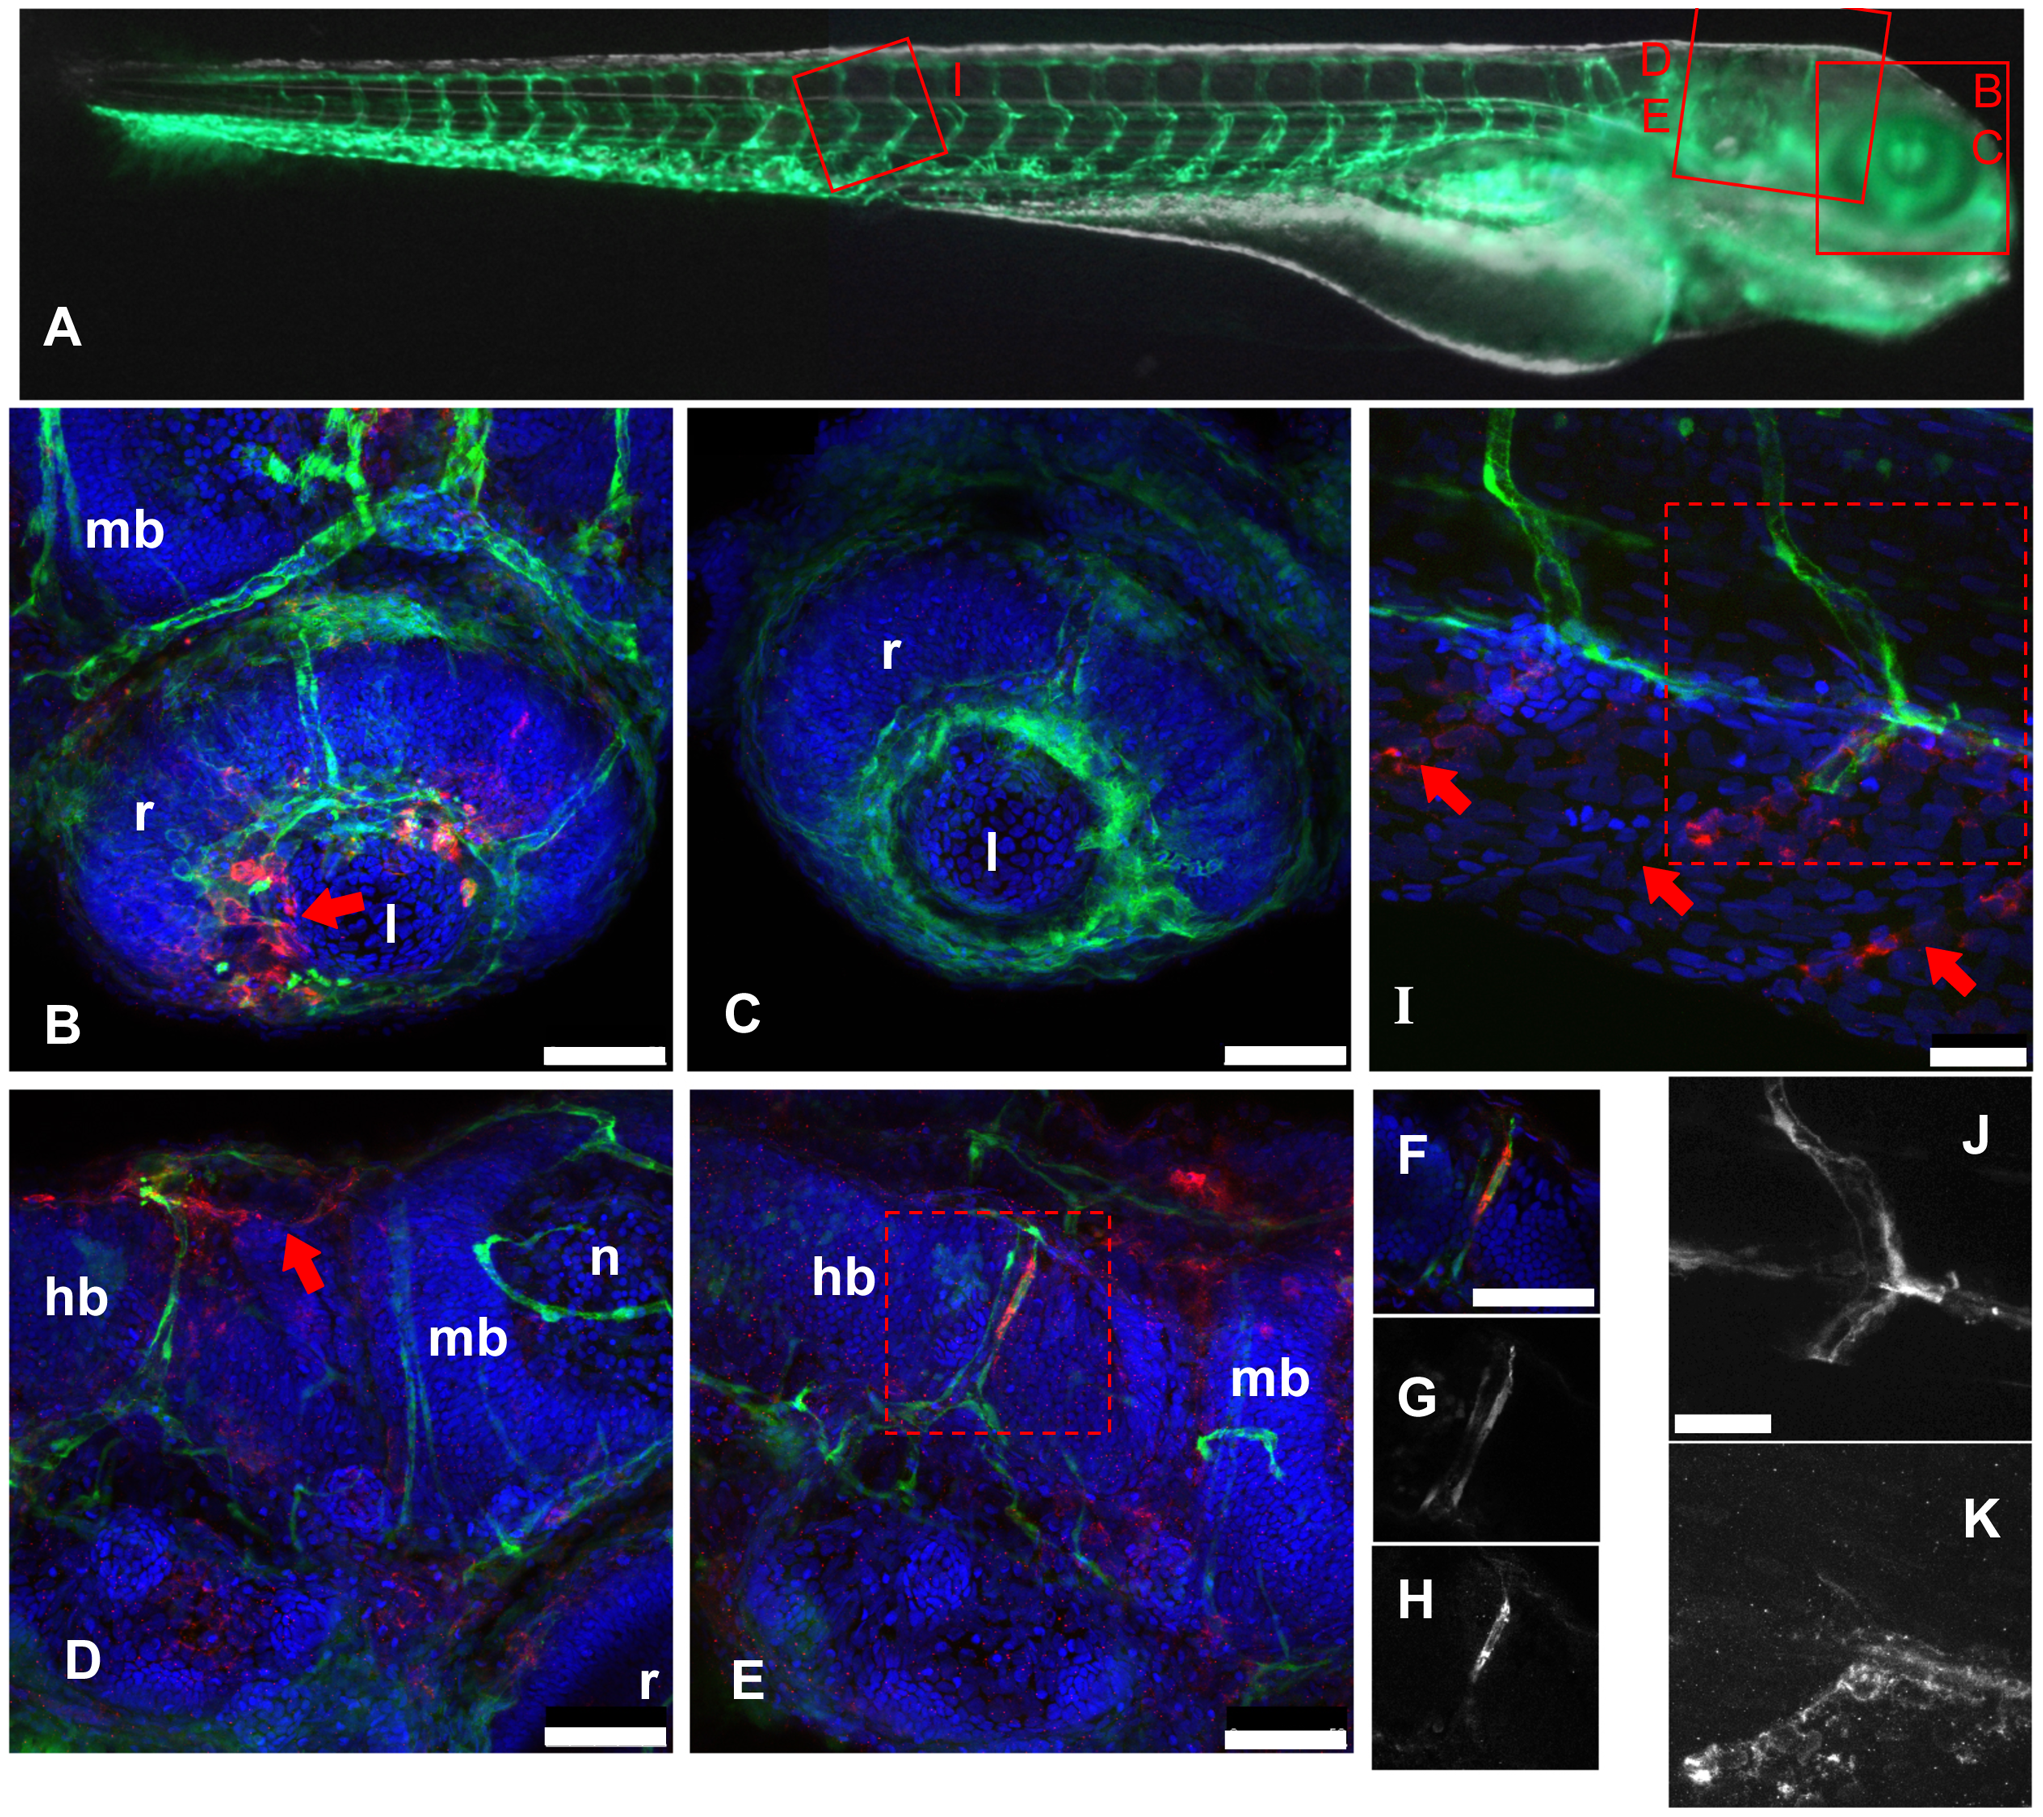 IHNV infects and disrupts blood vessels.